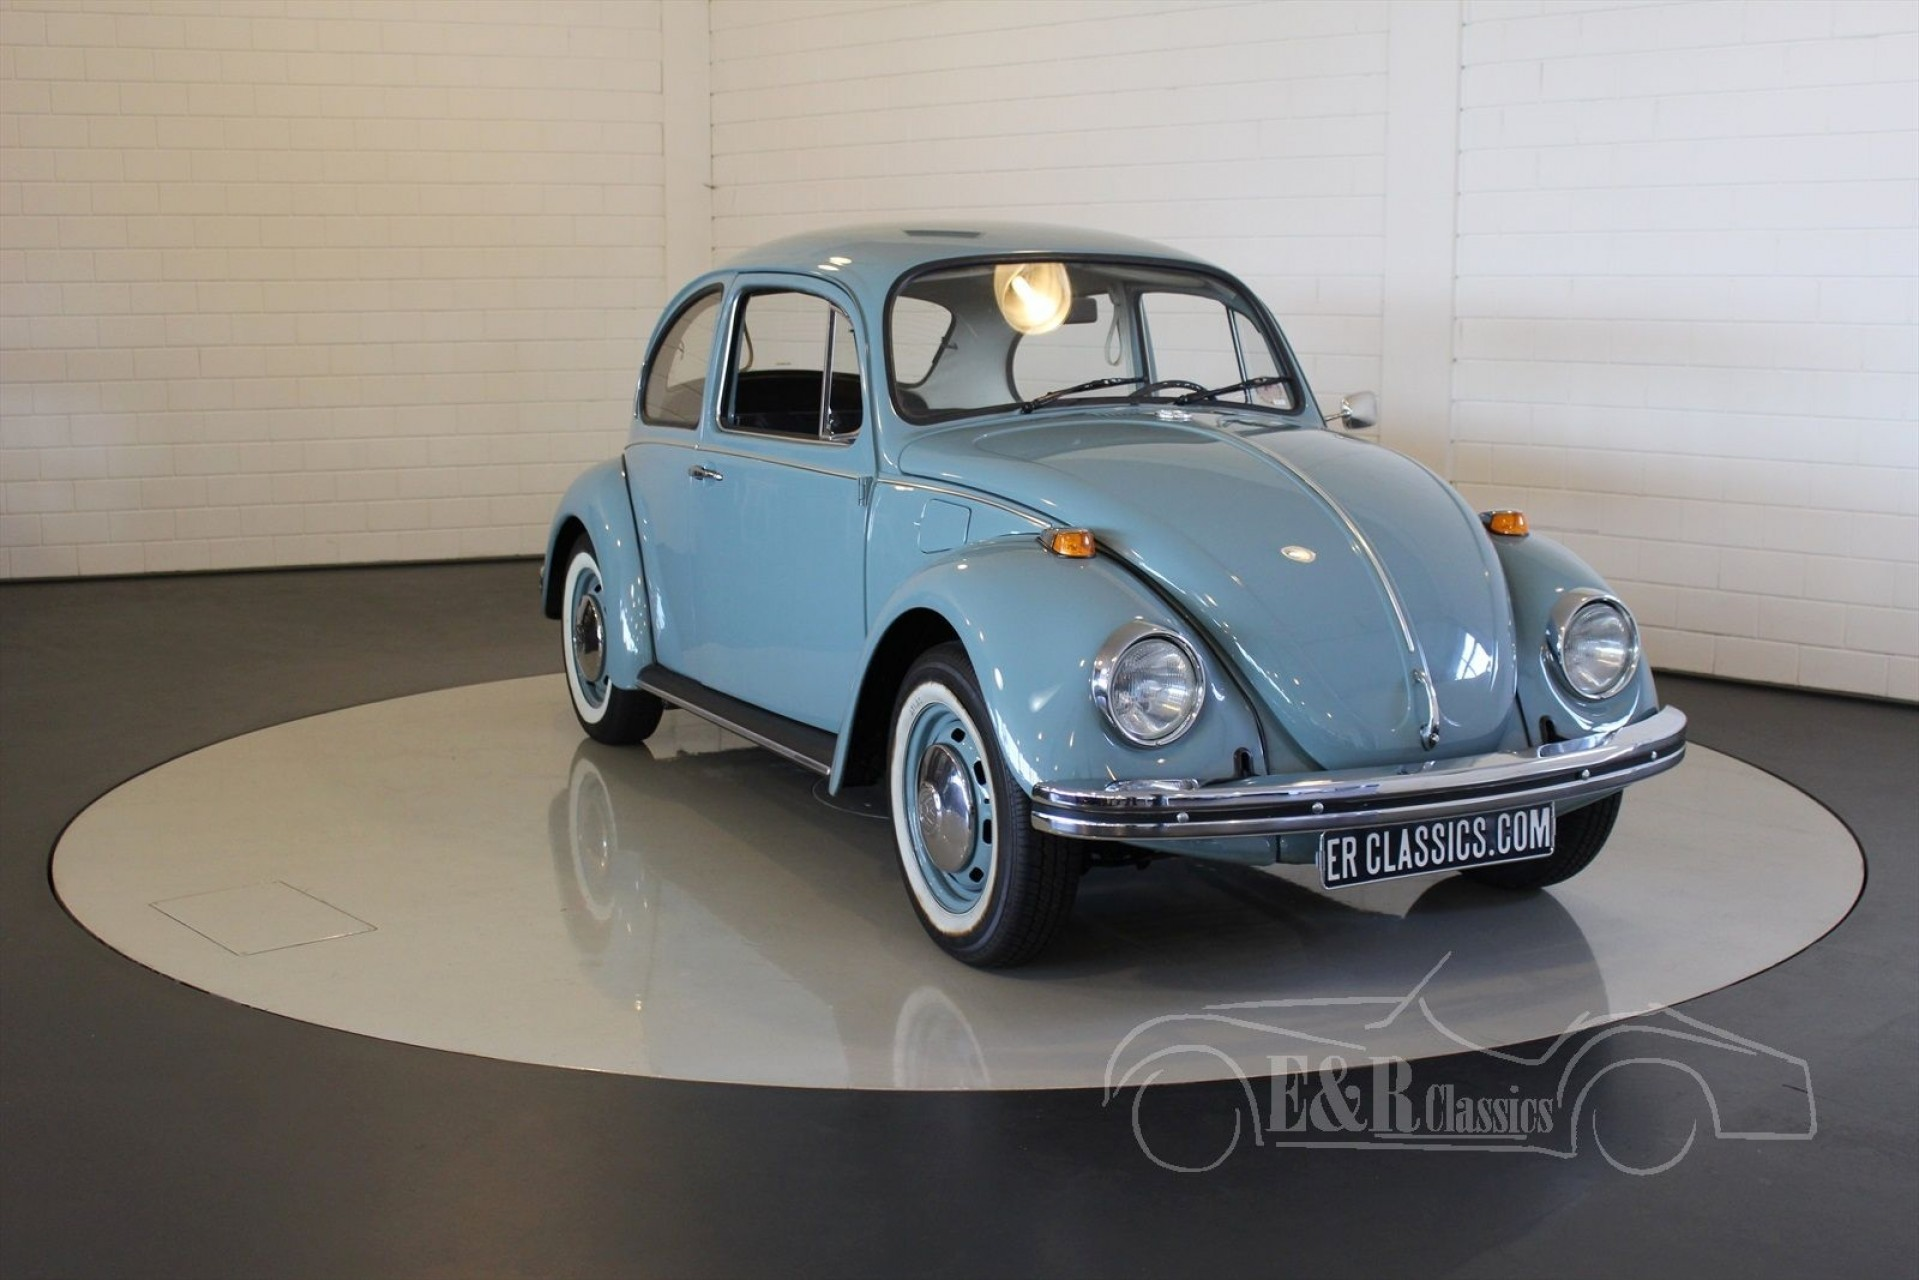 Volkswagen Beetle 1300s 1973 For Sale At Erclassics